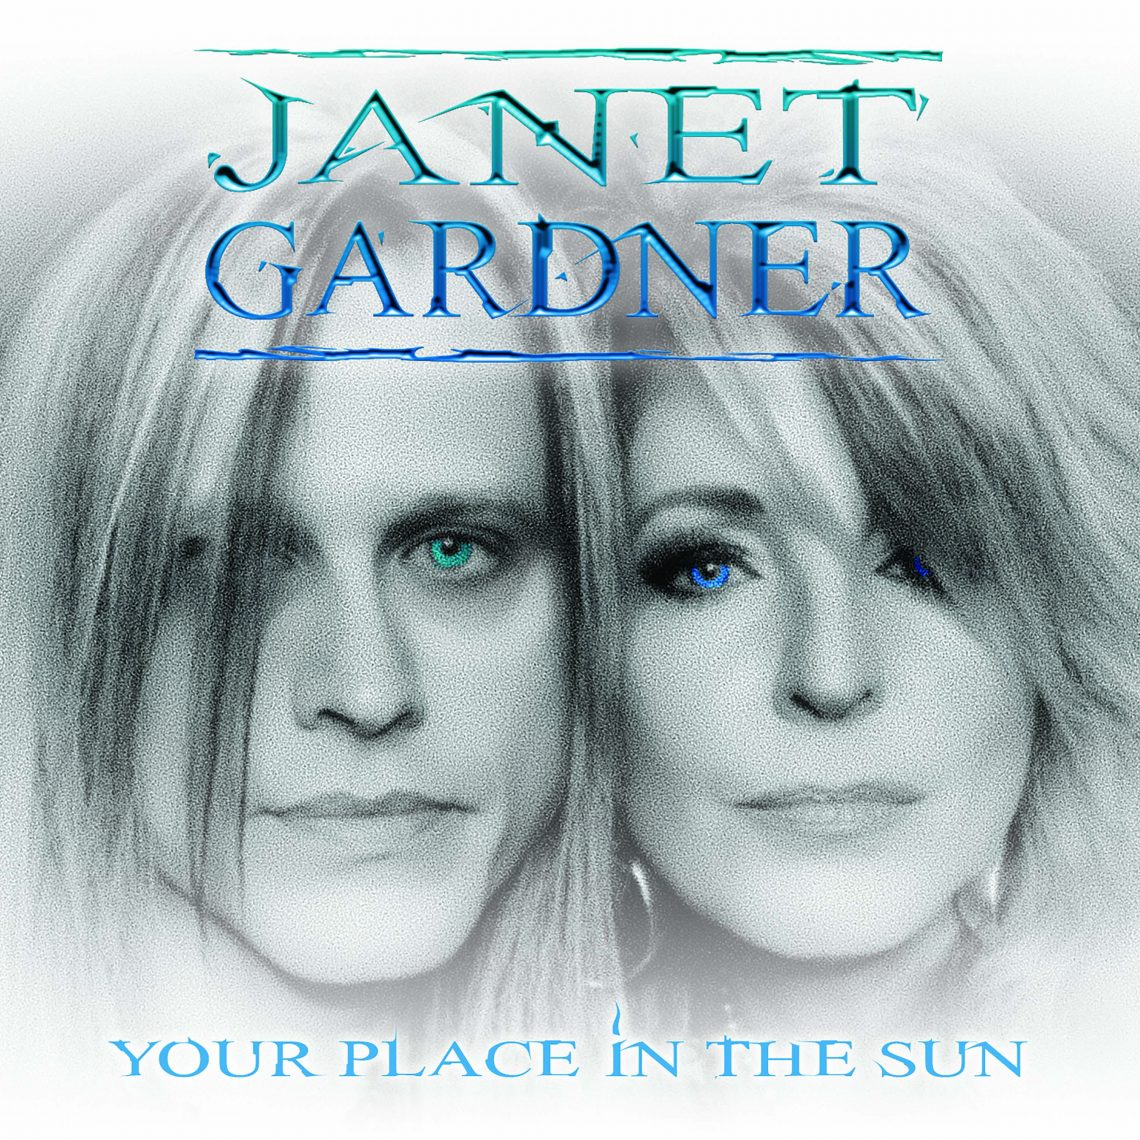 Interview with Janet Gardner